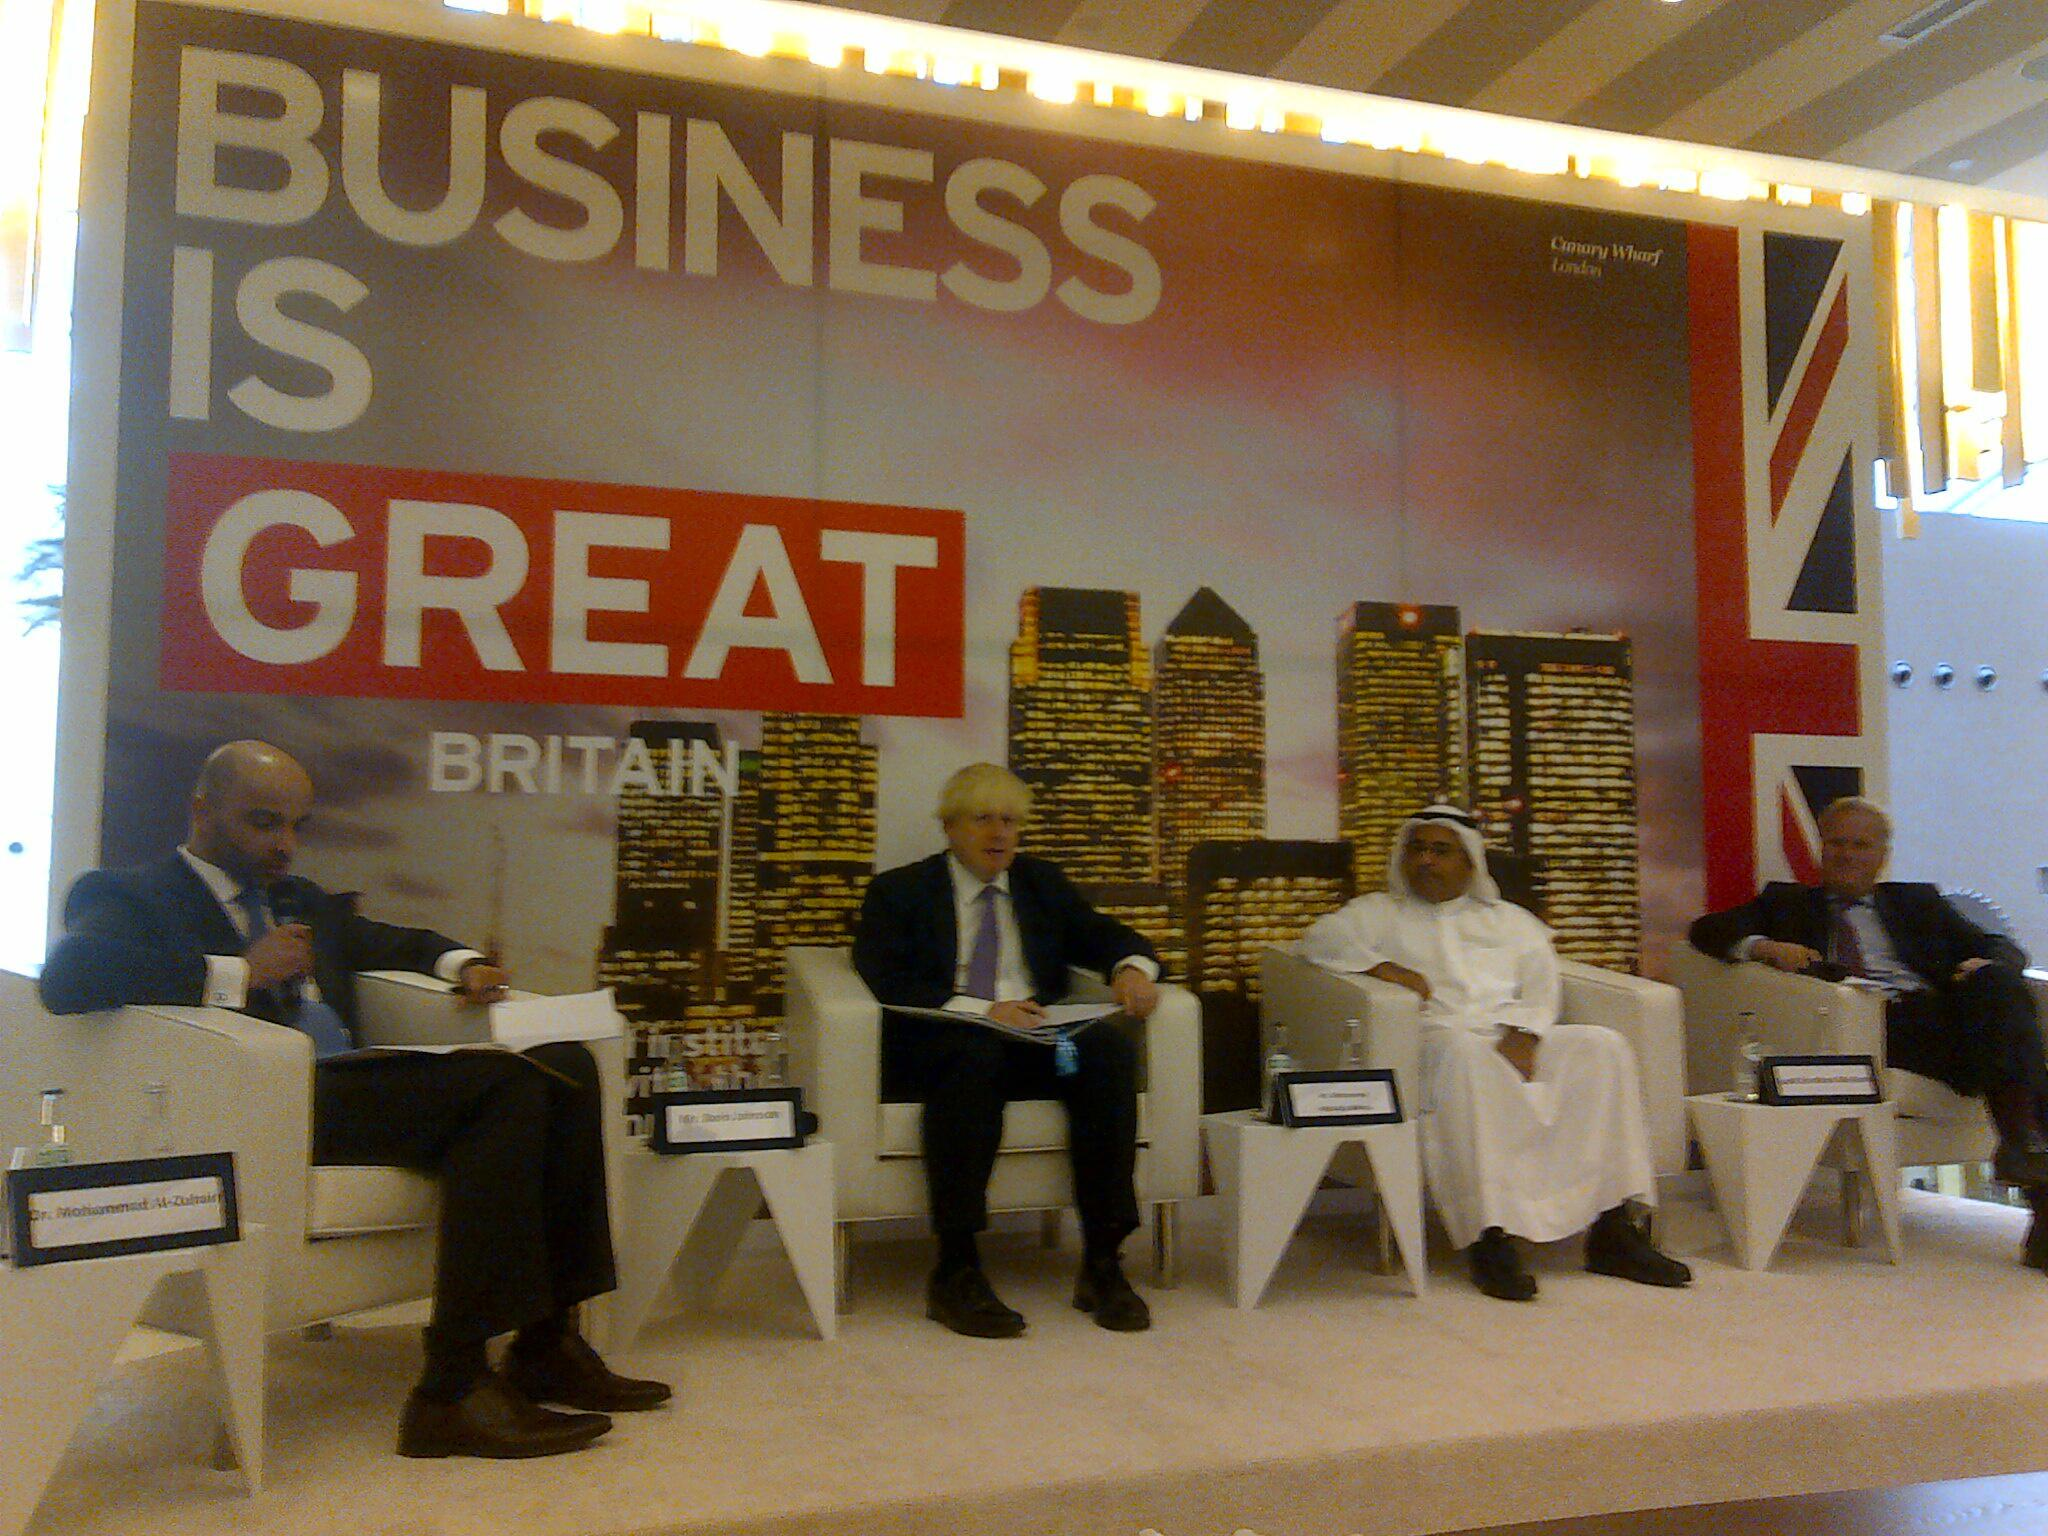 Promoting London & UK in Kuwait today - all here pleased with UK's new visa waiver for Kuwait, Oman, Qatar & the UAE http://t.co/lCd1z2ijcn